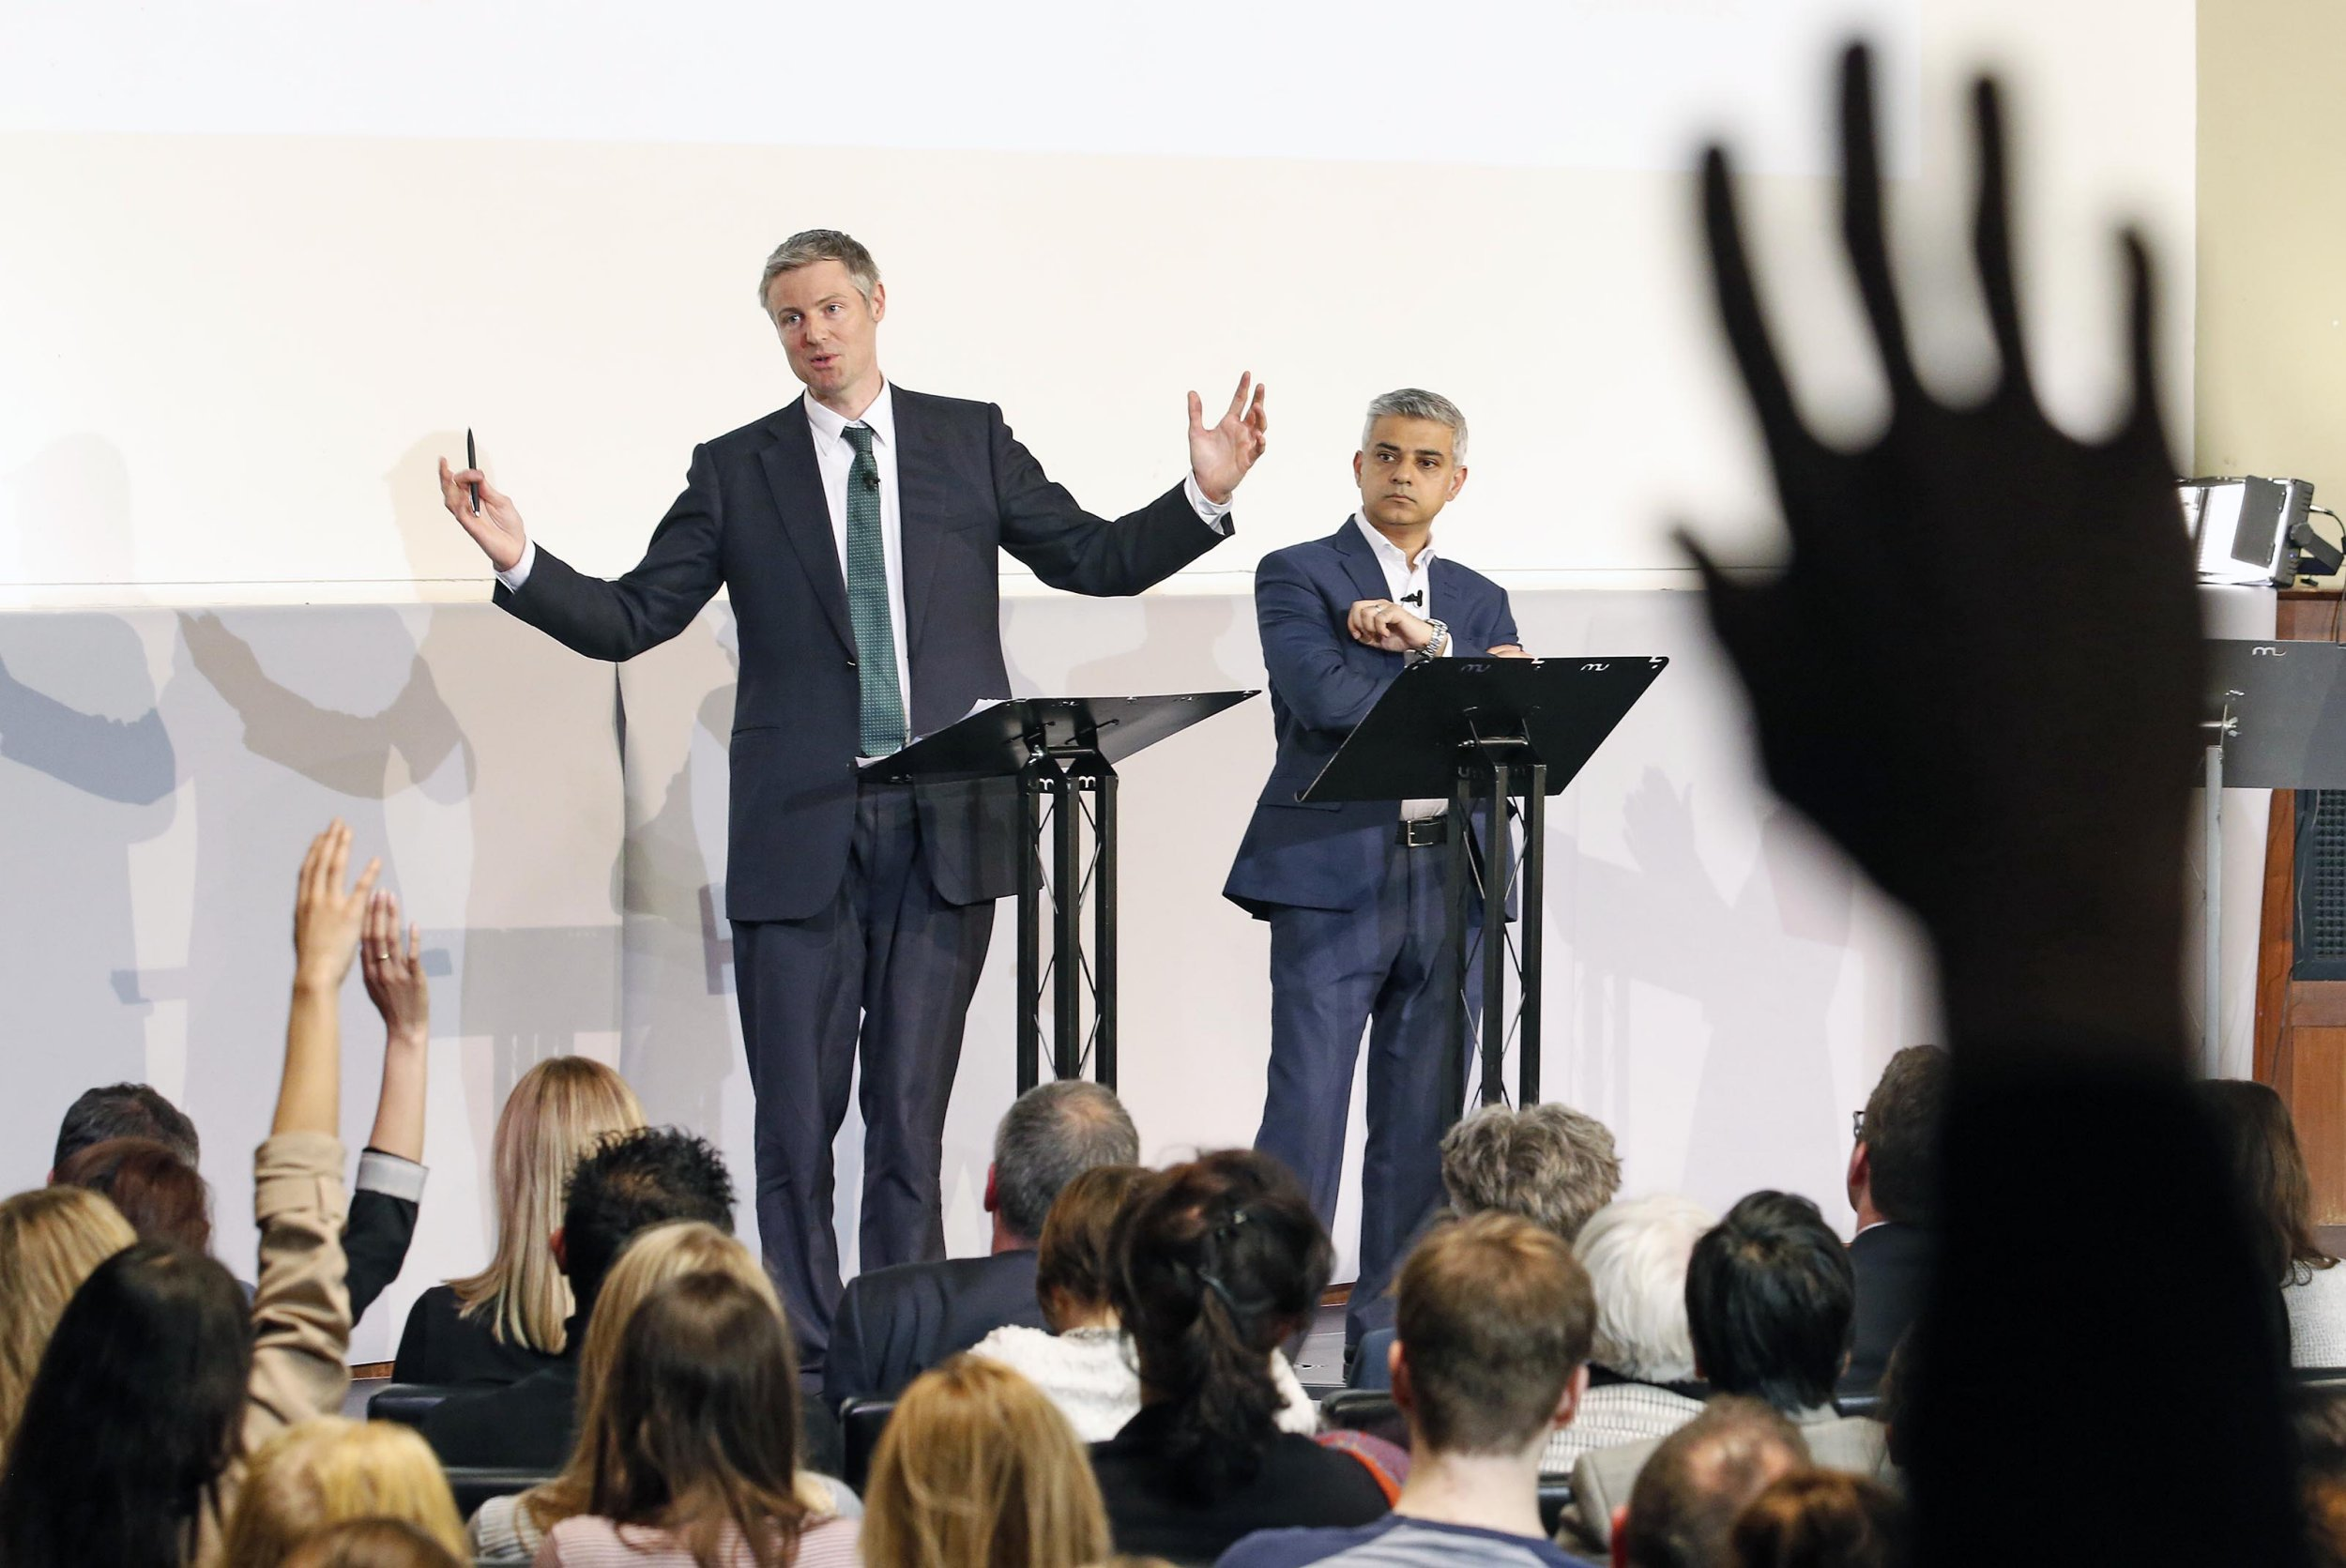 London Evening Standard Mayoral Debate with Sadiq Khan and Zac Goldsmith. A member of the audience holds up their hand wanting to ask a question...PICTURE BY: NIGEL HOWARD ©..email: nigelhowardmedia@gmail.com London Mayoral Hustings